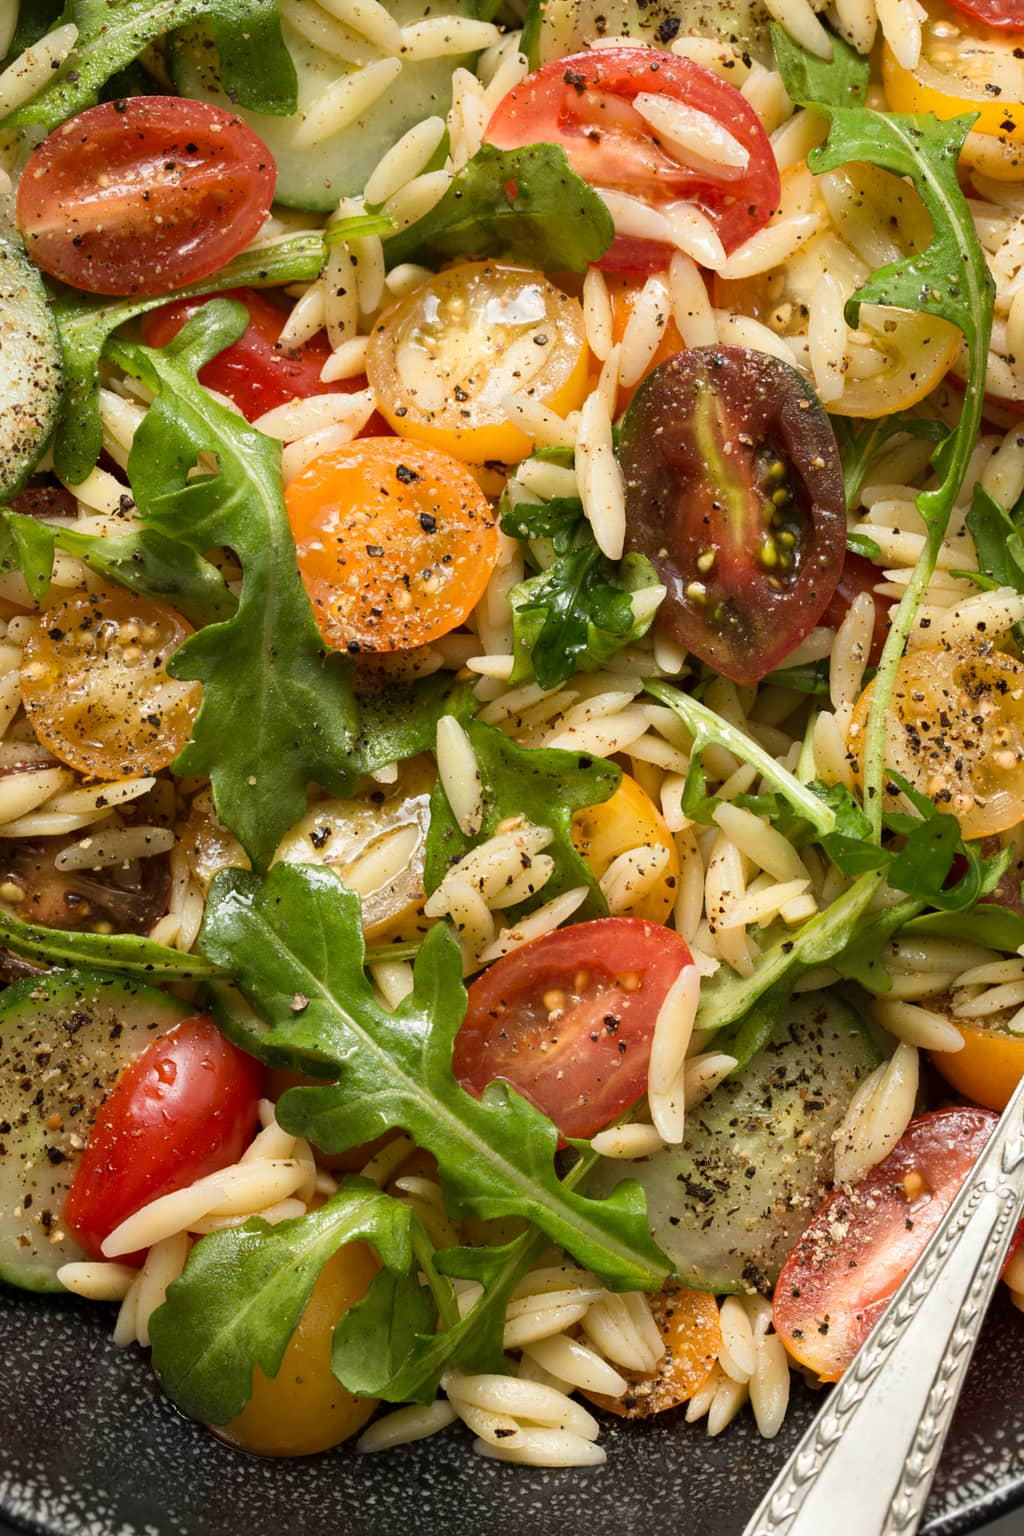 Greek Pasta Salad - from Terra's Kitchen. All the work is done ahead of time for you! This wonderful salad comes together in less than 15 minutes with a little help from Terra's Kitchen. thecafesucrefarine.com